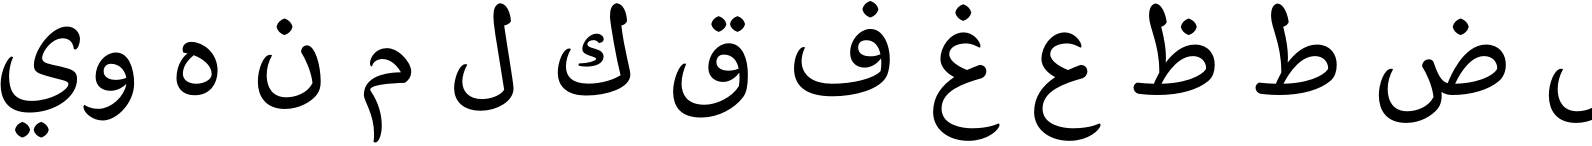 Baldufa Arabic Regular Font